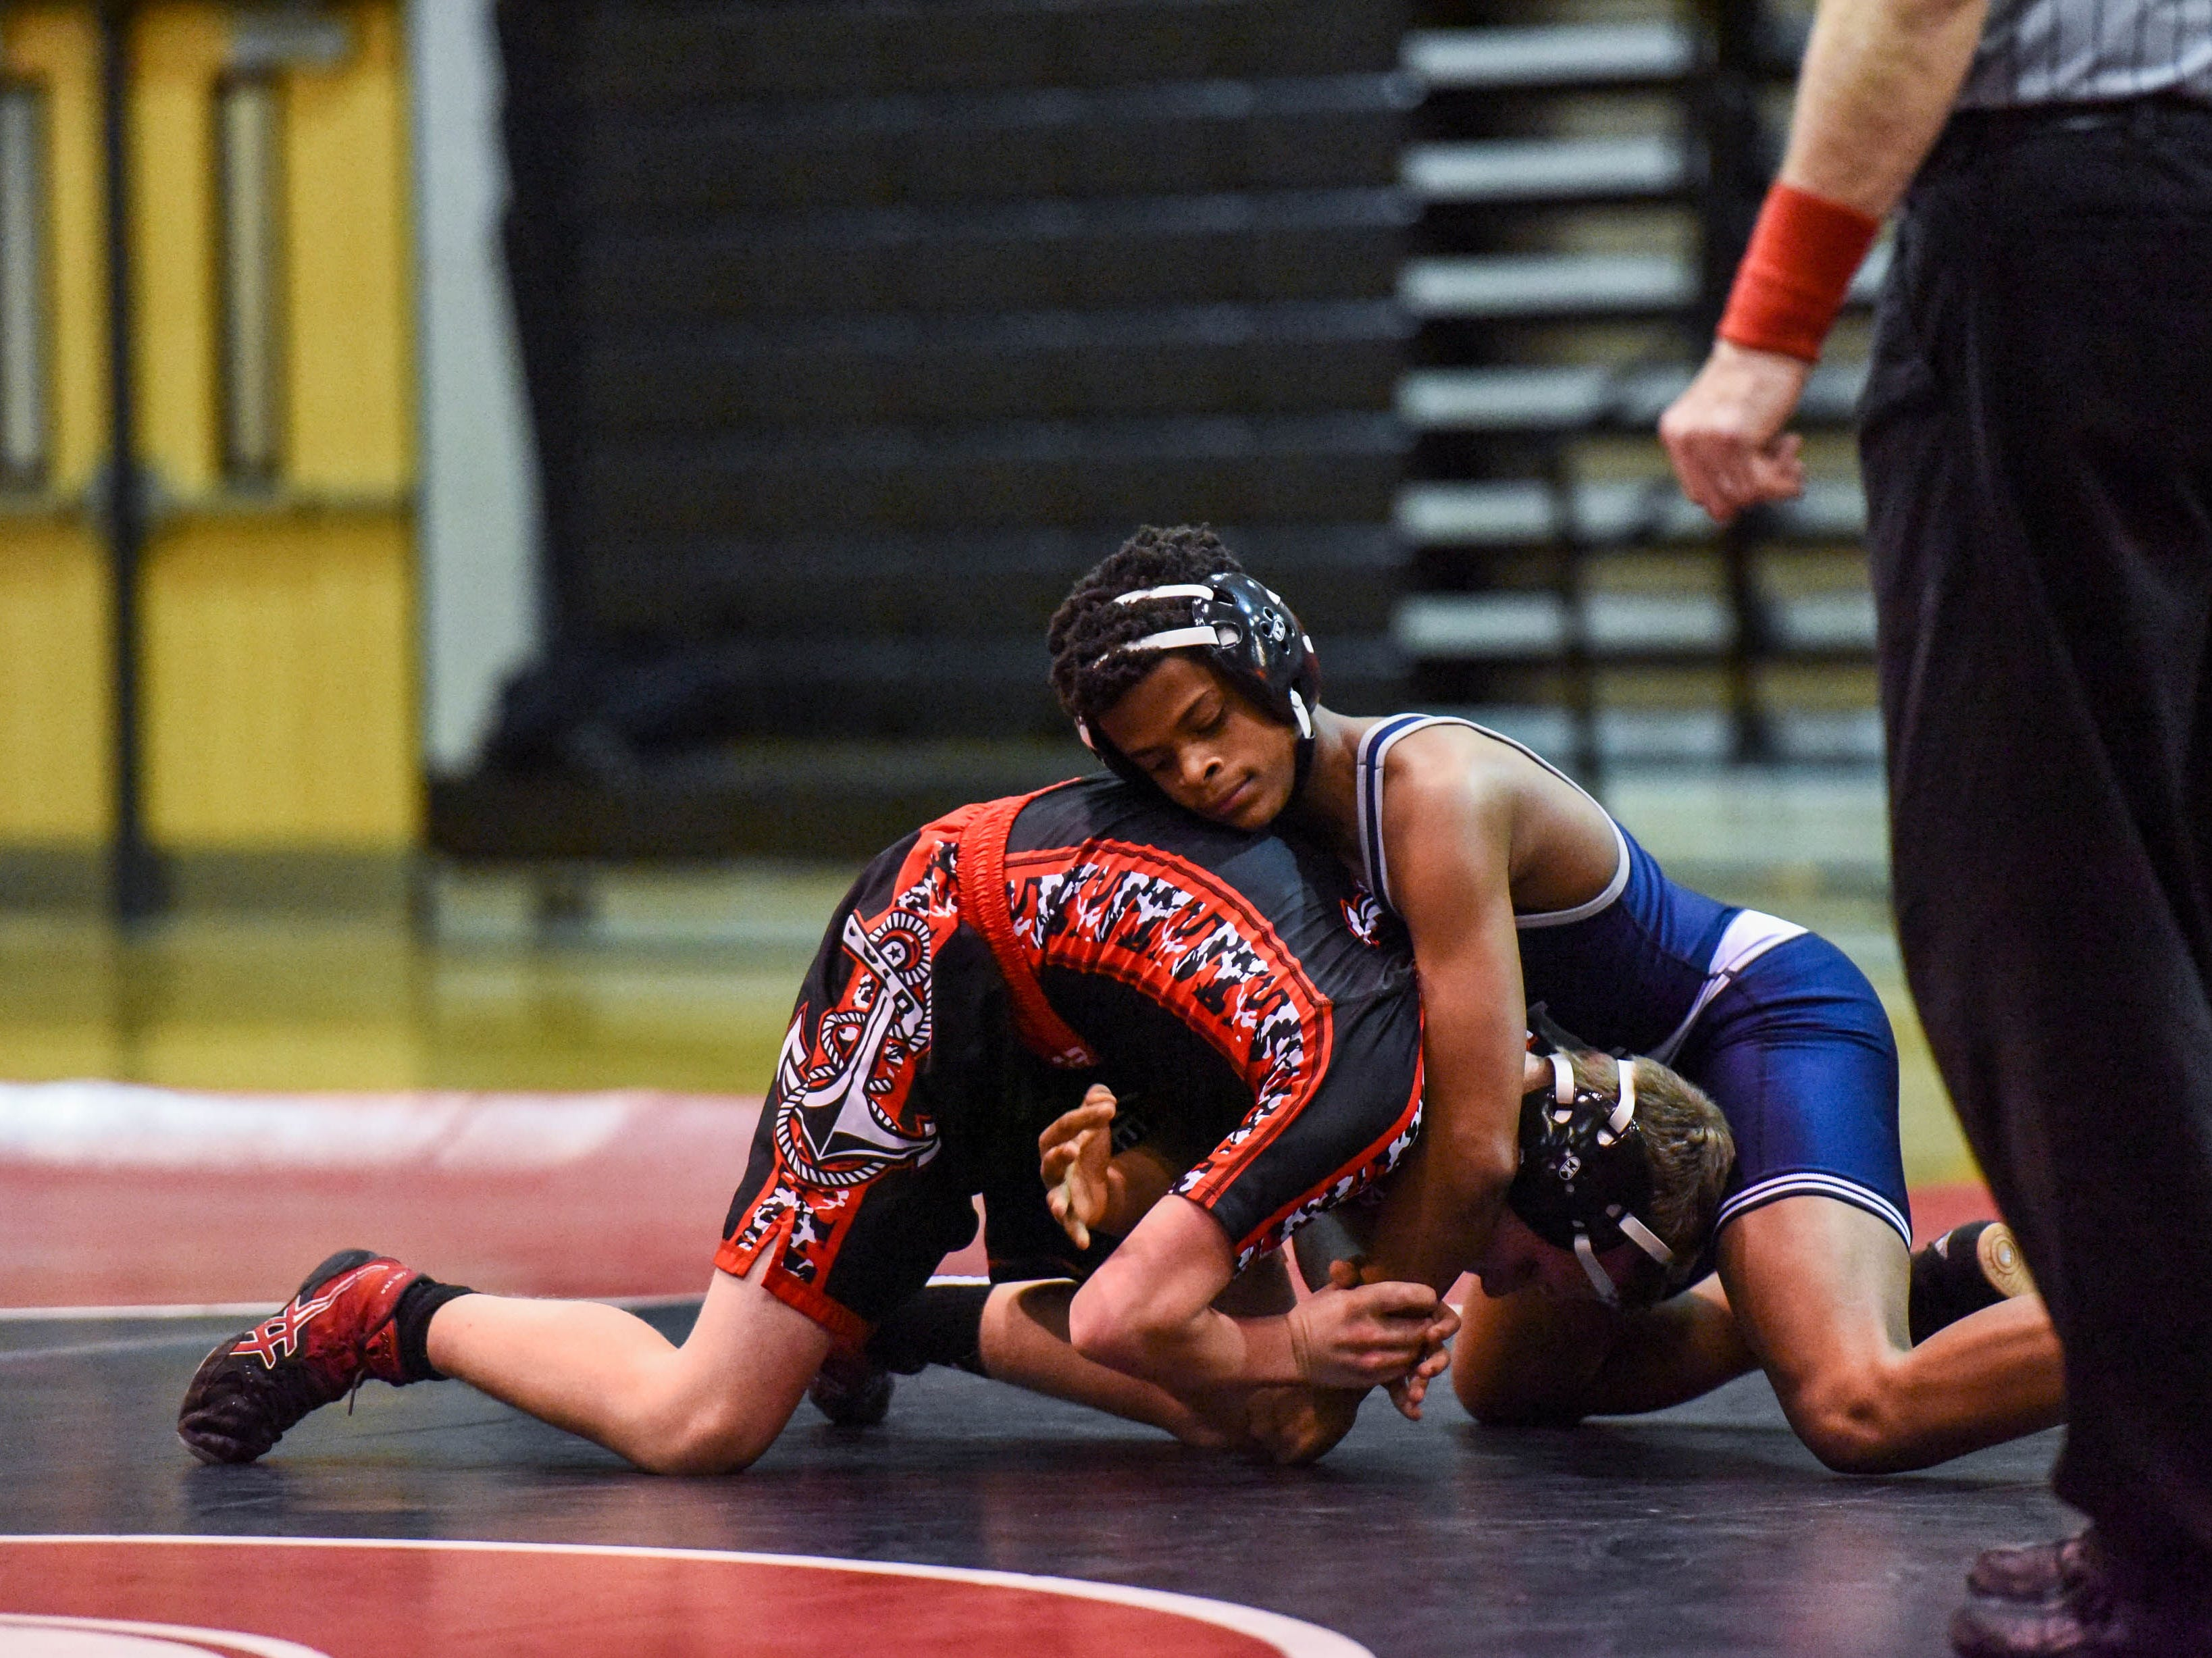 Kent Island's Cameron Faulkner competes in a wrestling match against Bennett's Aiden Hugues at Bennett High on Wednesday, Jan 9, 2018.